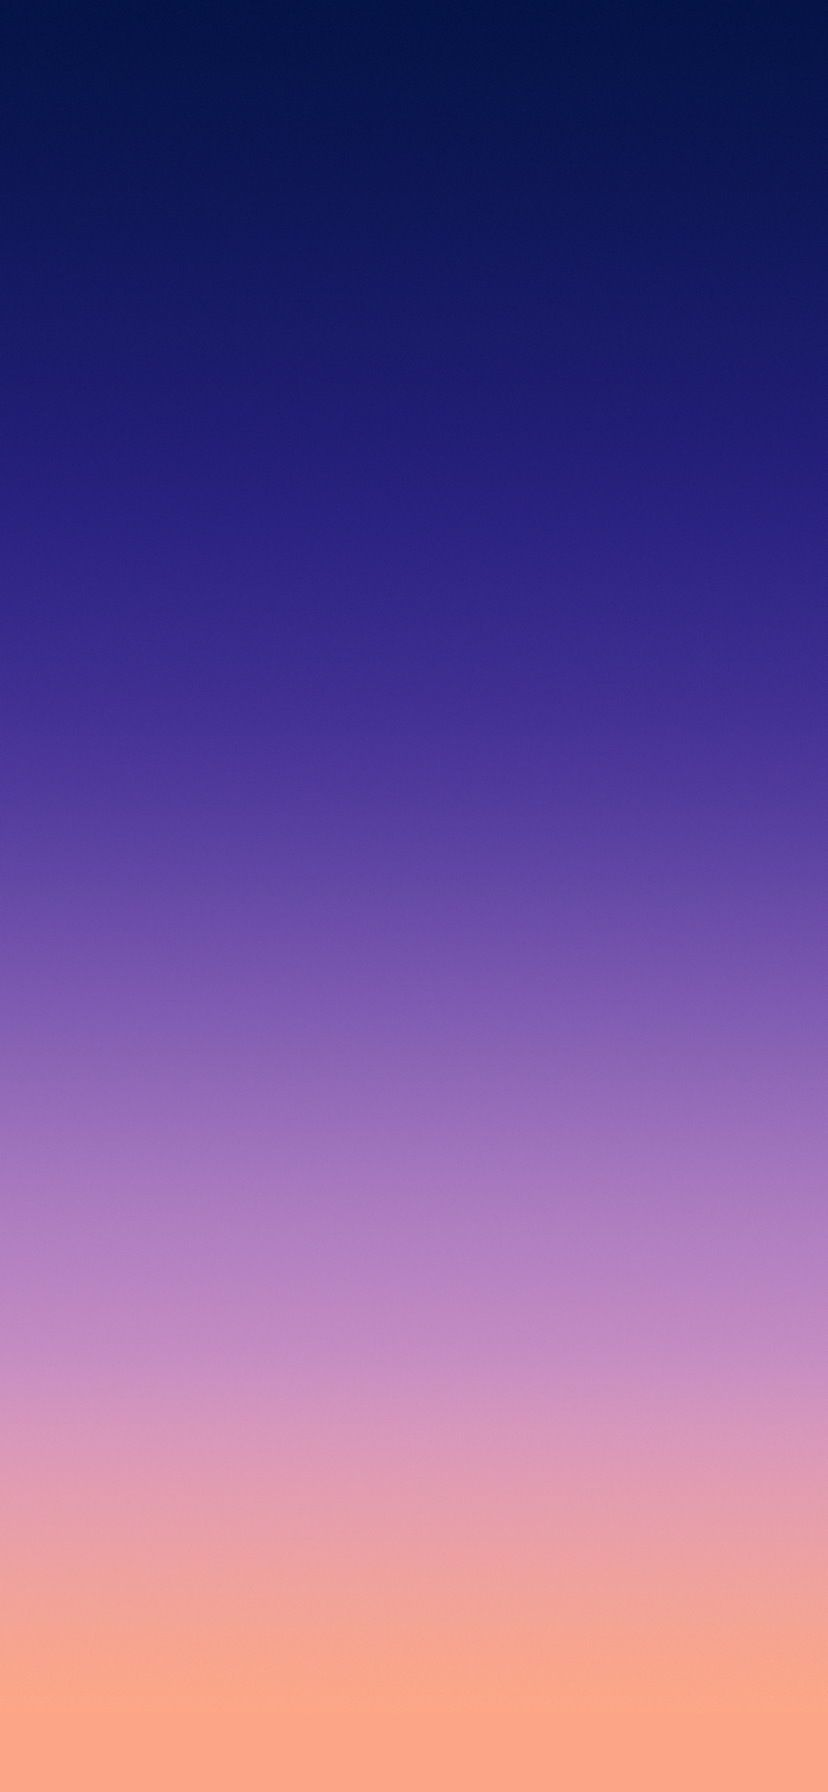 Pink Iphone Xr Wallpapers Top Free Pink Iphone Xr